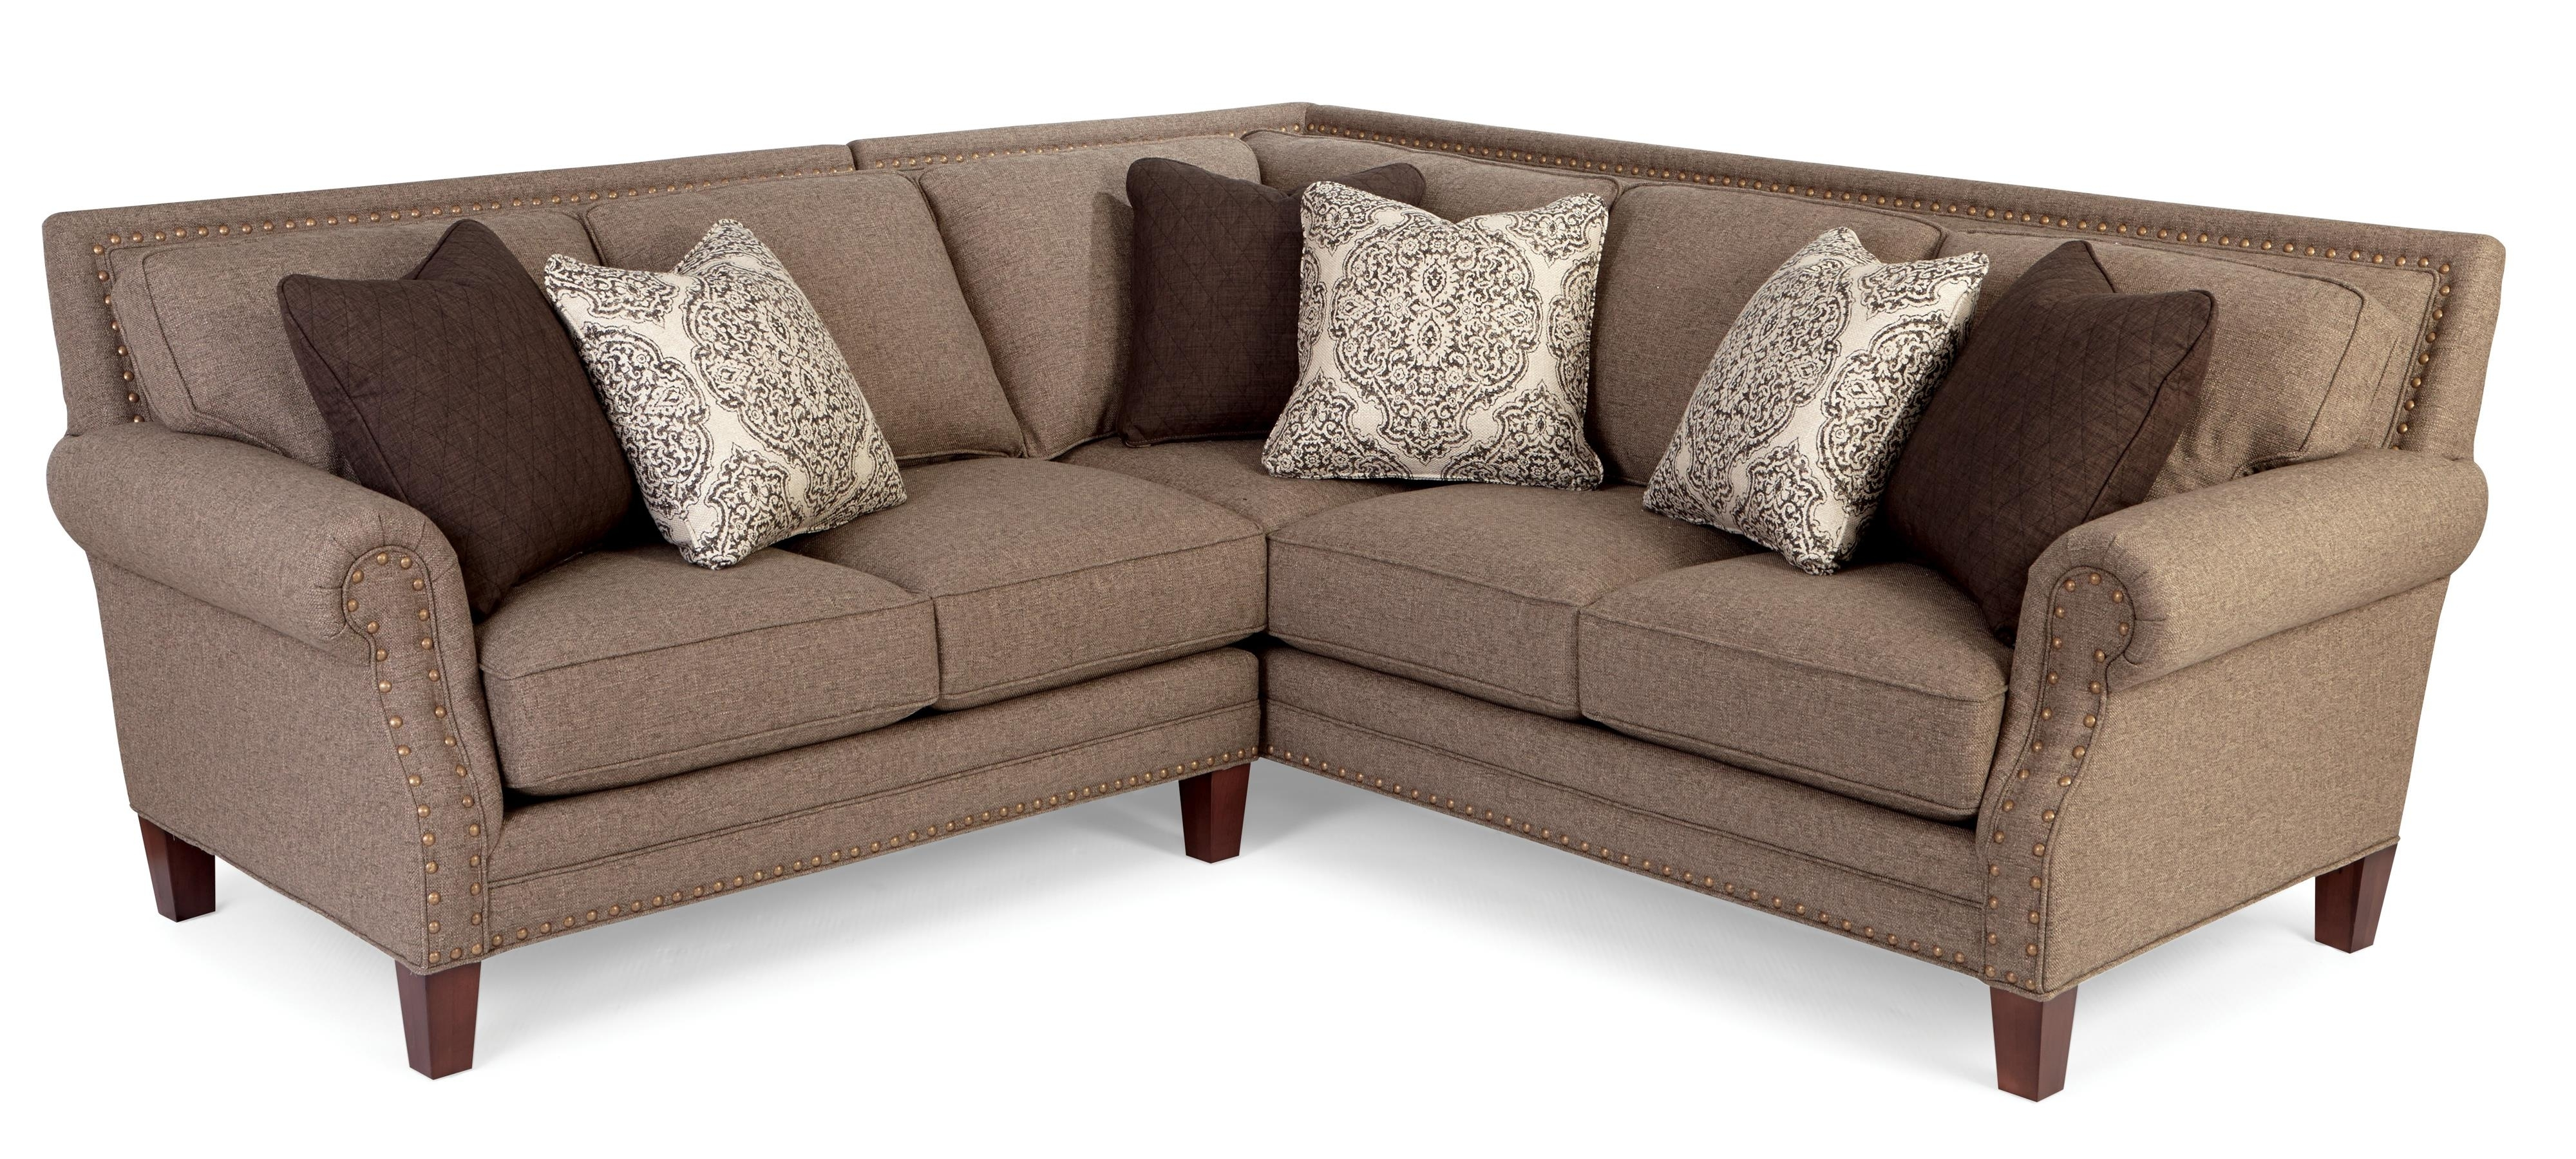 Two Piece Sectional Sofa With Rolled Arms And Light Brass Nailheads Intended For Sectional Sofas With Nailheads (View 7 of 10)